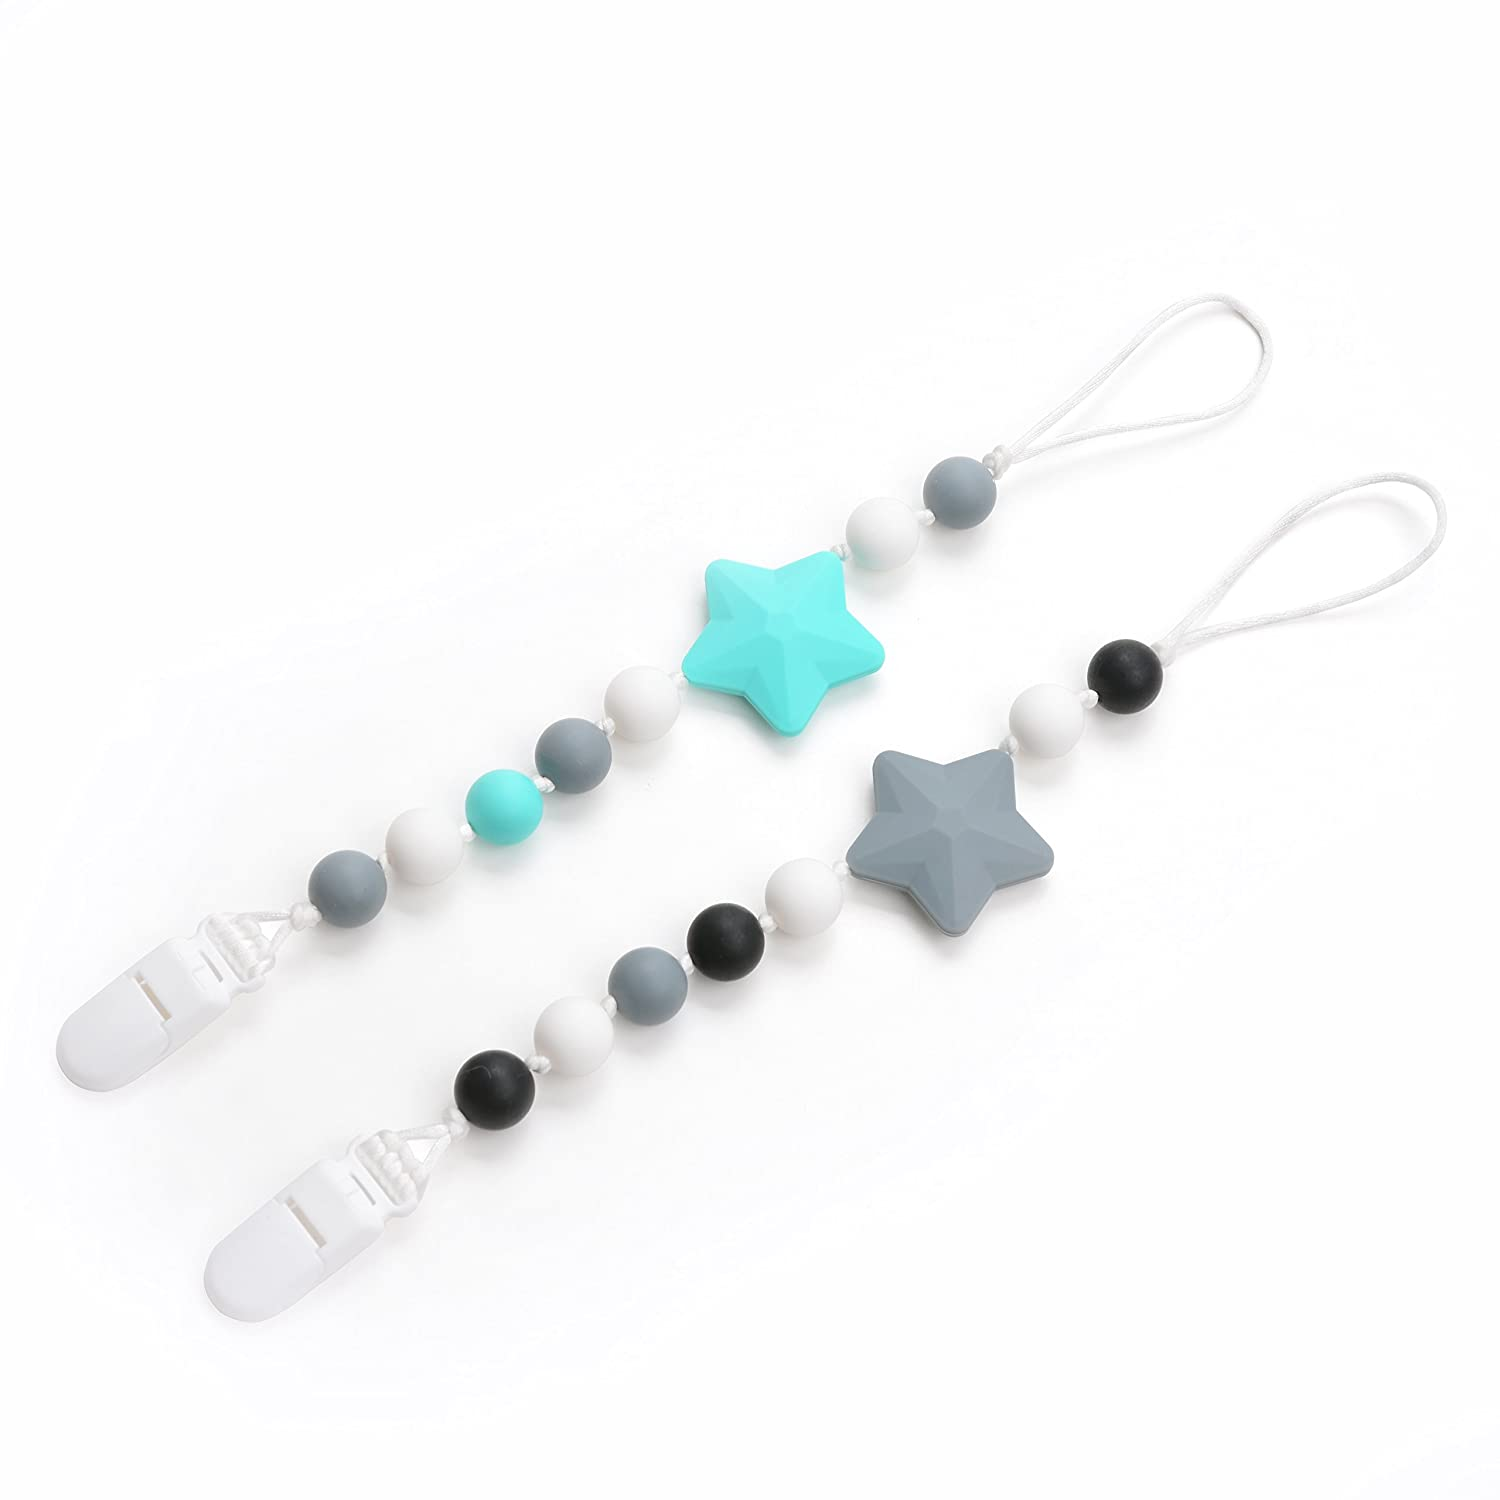 Lofca Silicone Pacifier Clip Toy BPA Free Silicone Use with Any Pacifier or Teether Baby Teething Short Chain Pacifier 2 Pack (Turquoise/Grey)